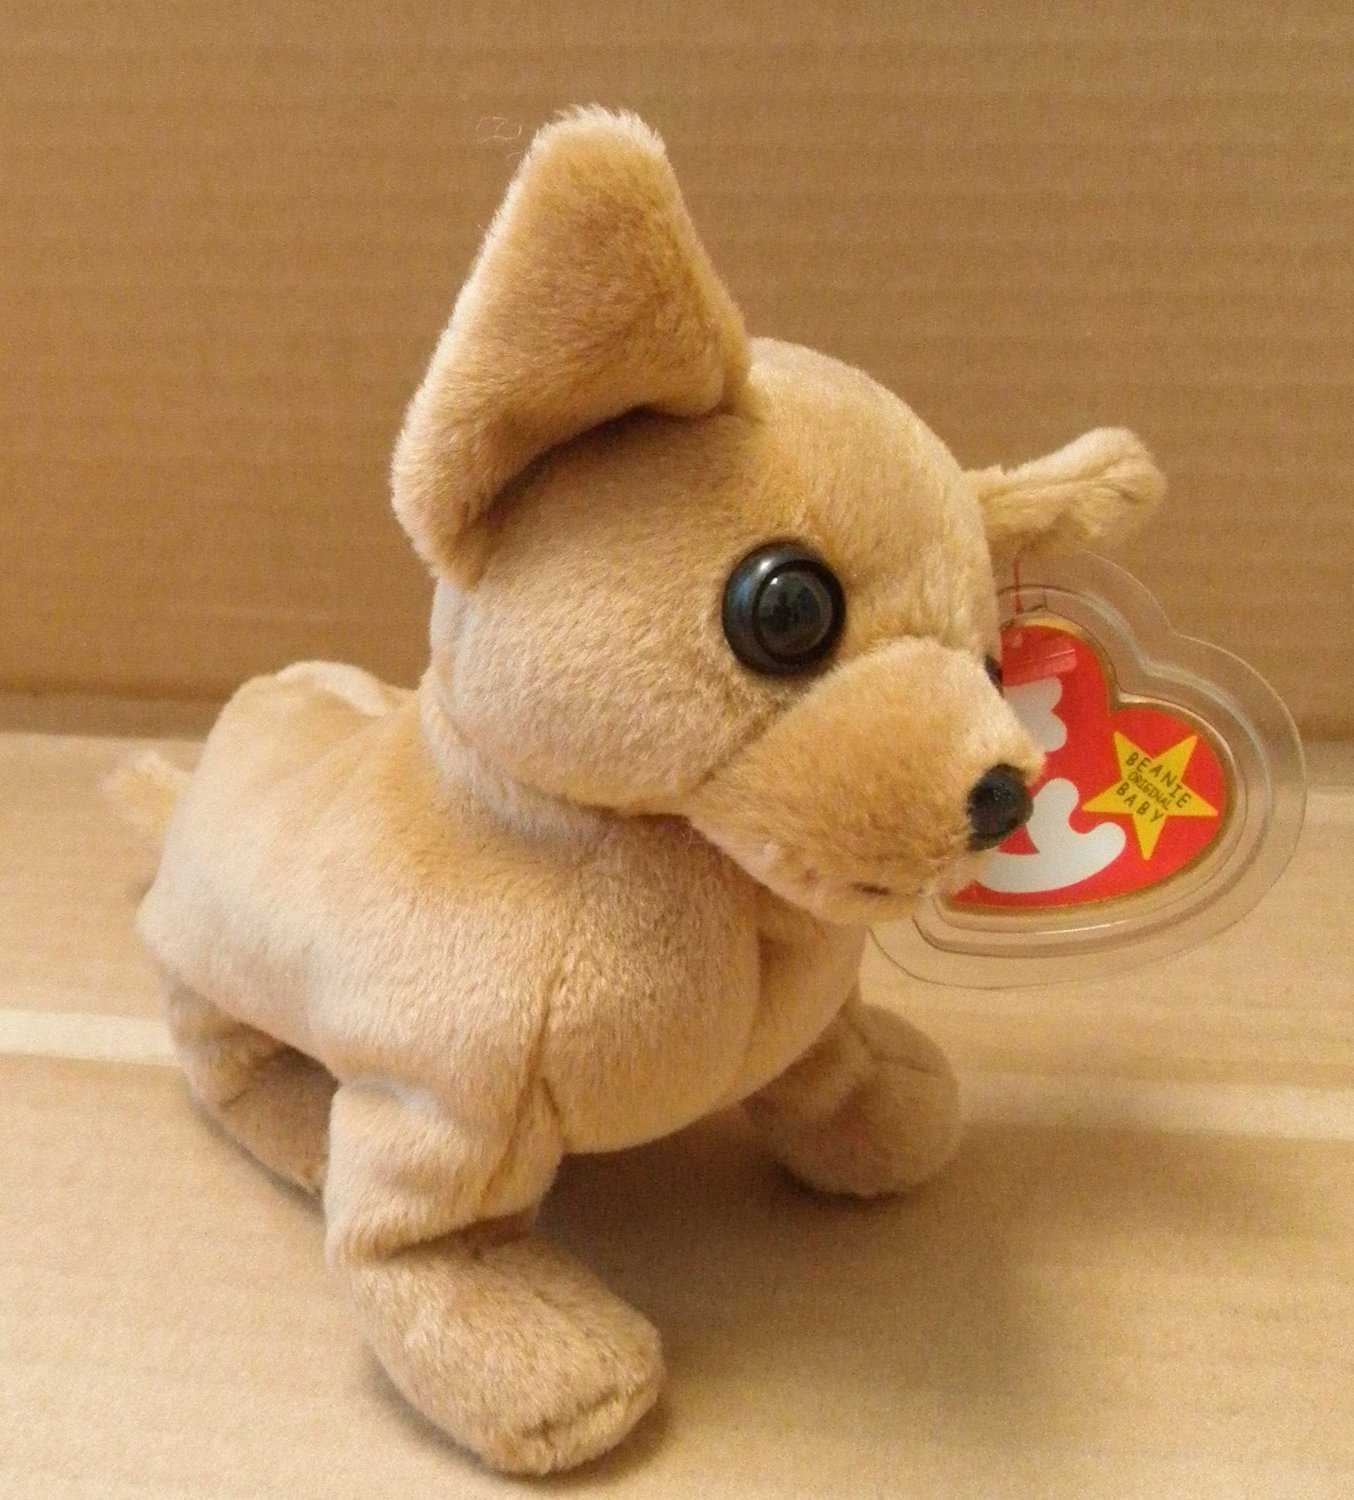 f66a12513b0 TY Beanie Babies Tiny the Chihuahua Dog Stuffed Animal Plush Toy - 6 inches  long